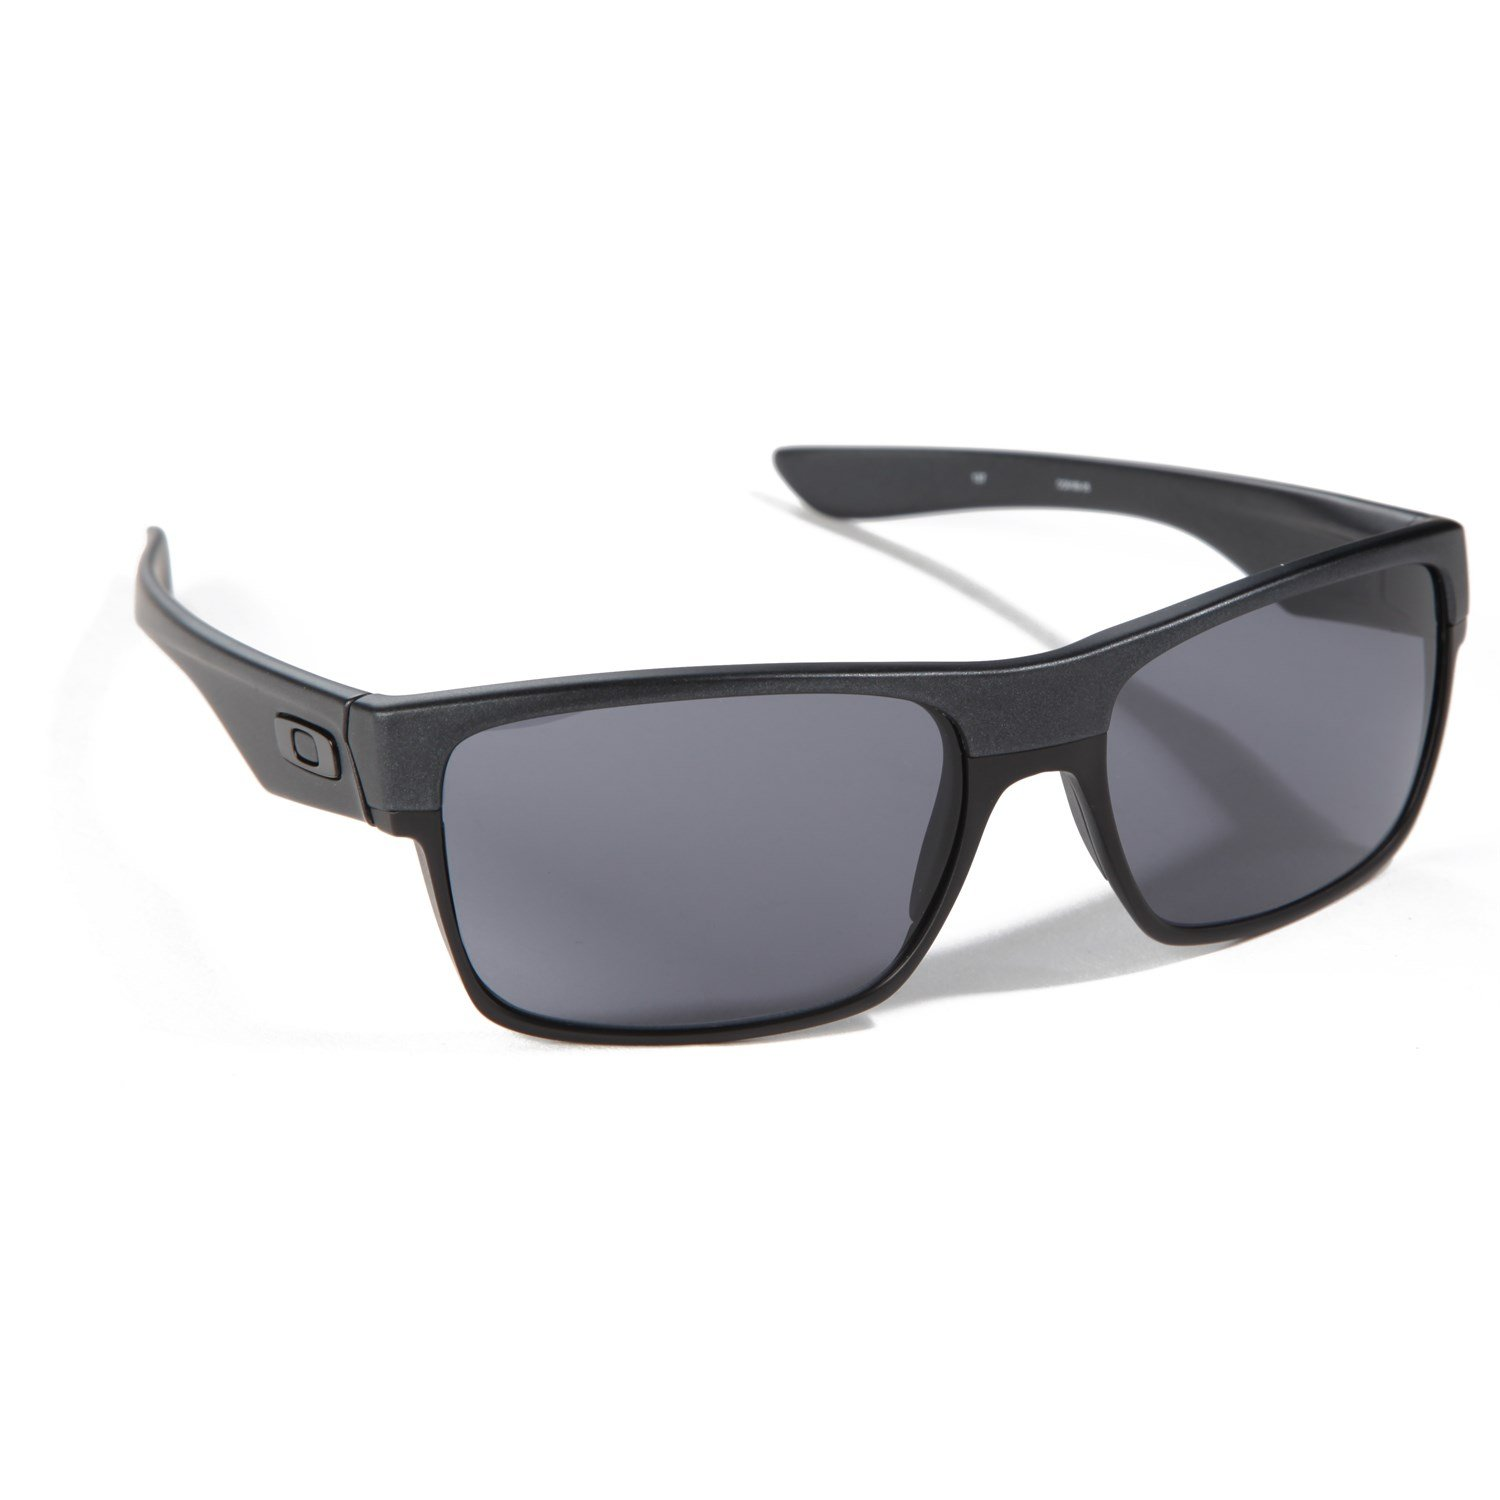 oakley sunglasses sale today only  oakley two face sunglasses steel grey front